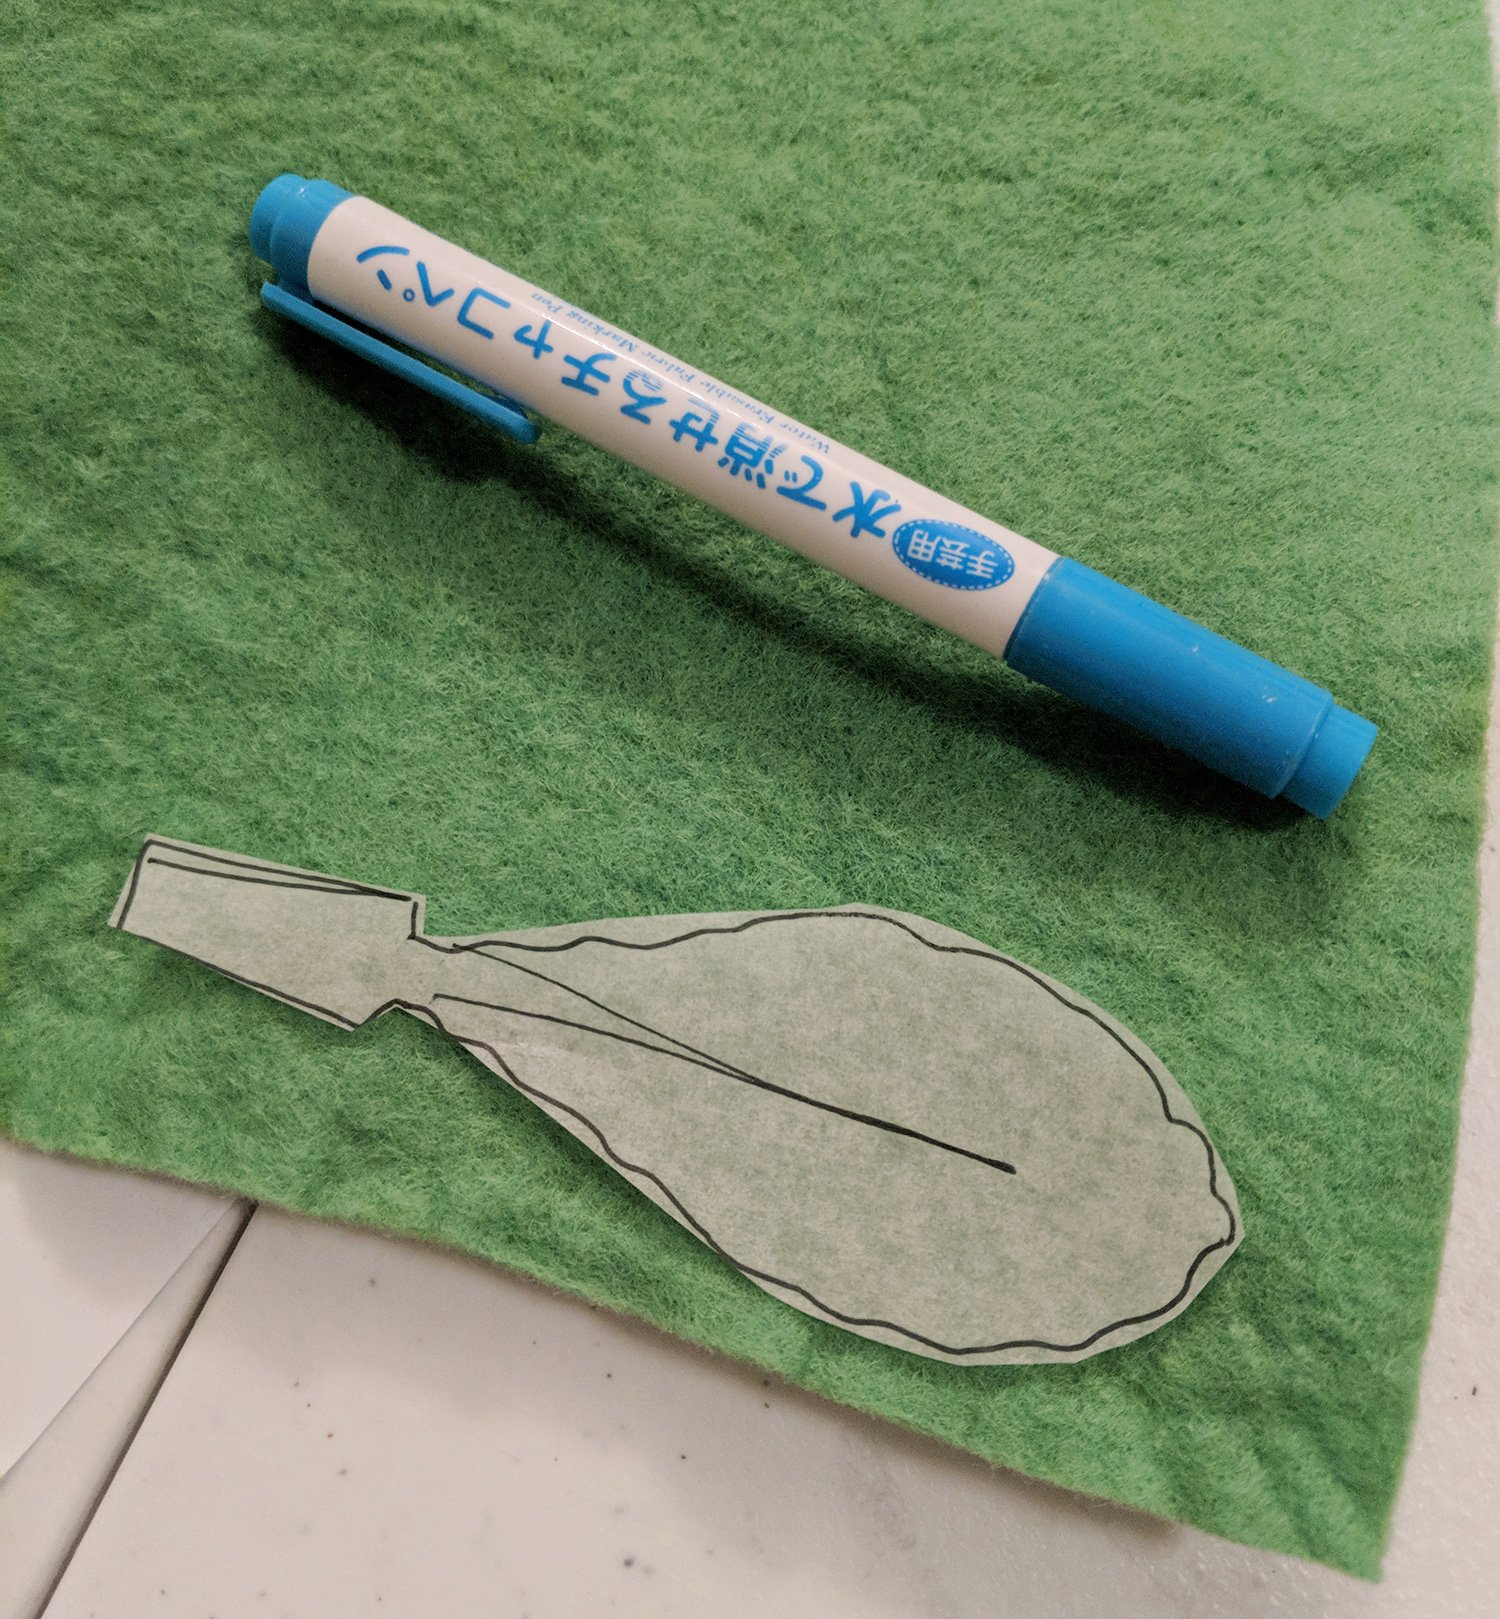 Transfer the pattern onto the stiffened felt using a fabric marker that erases easily